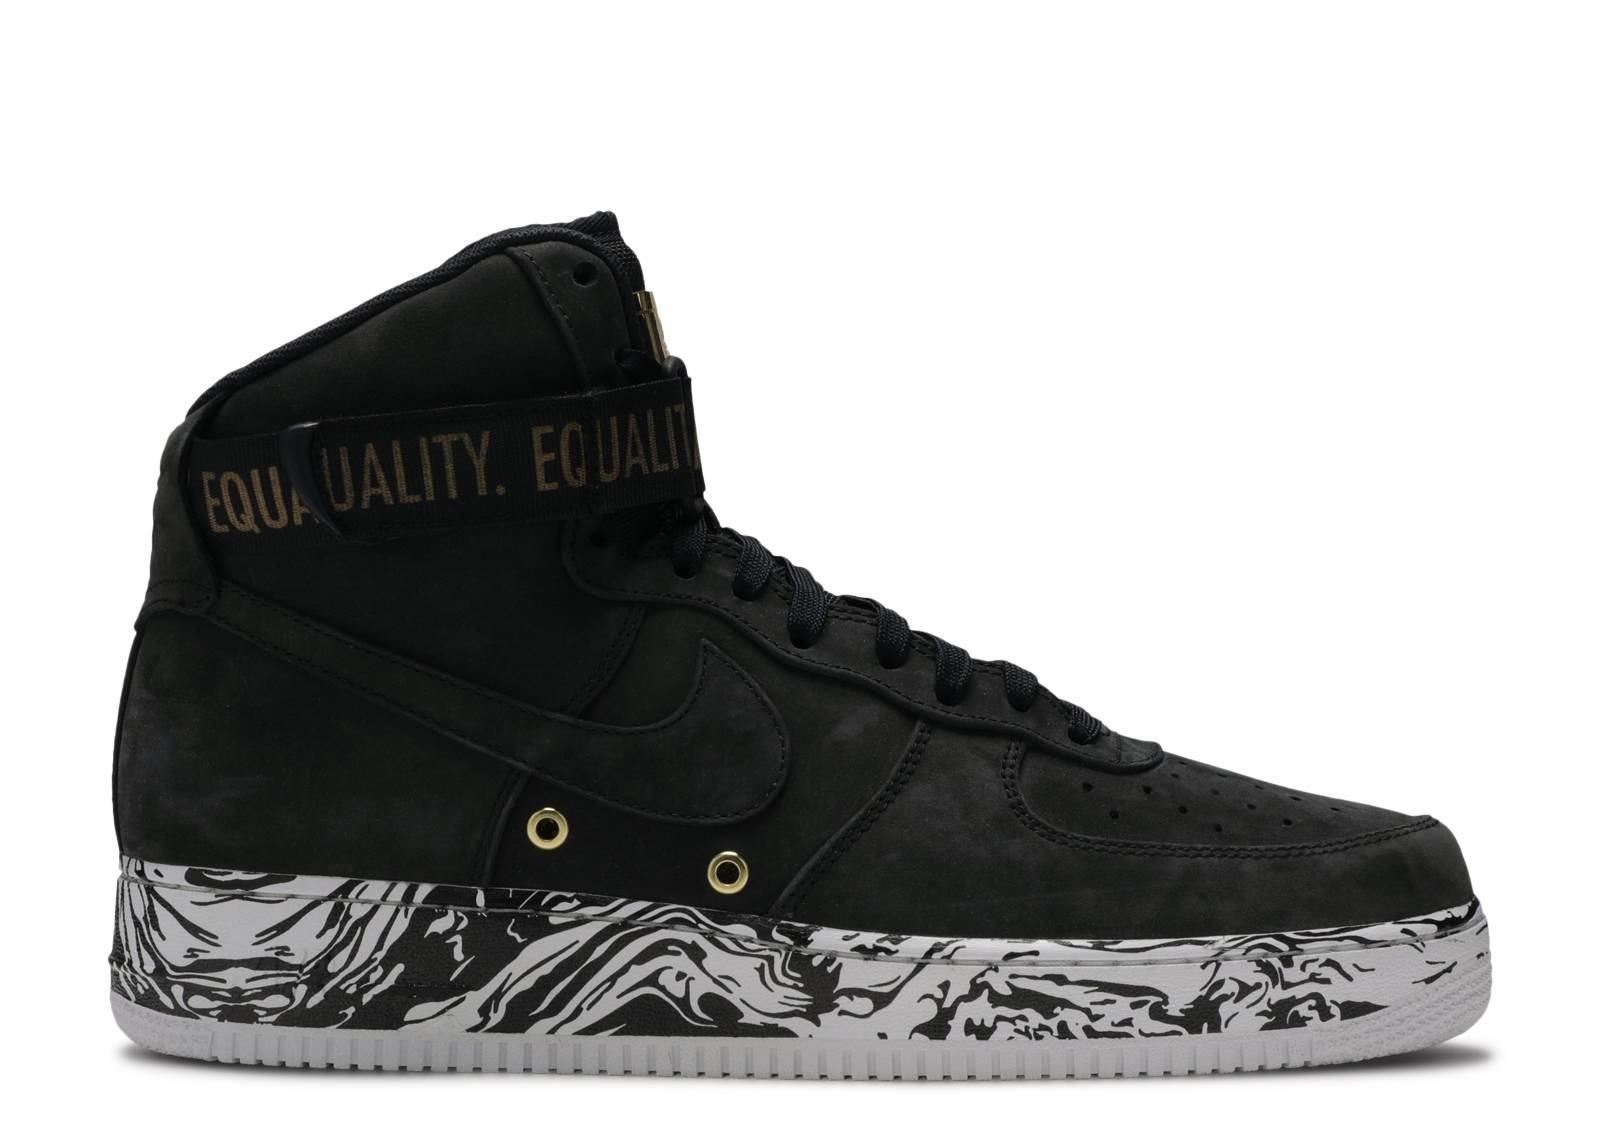 online retailer 67db0 5687f air force 1 hi bhm qs